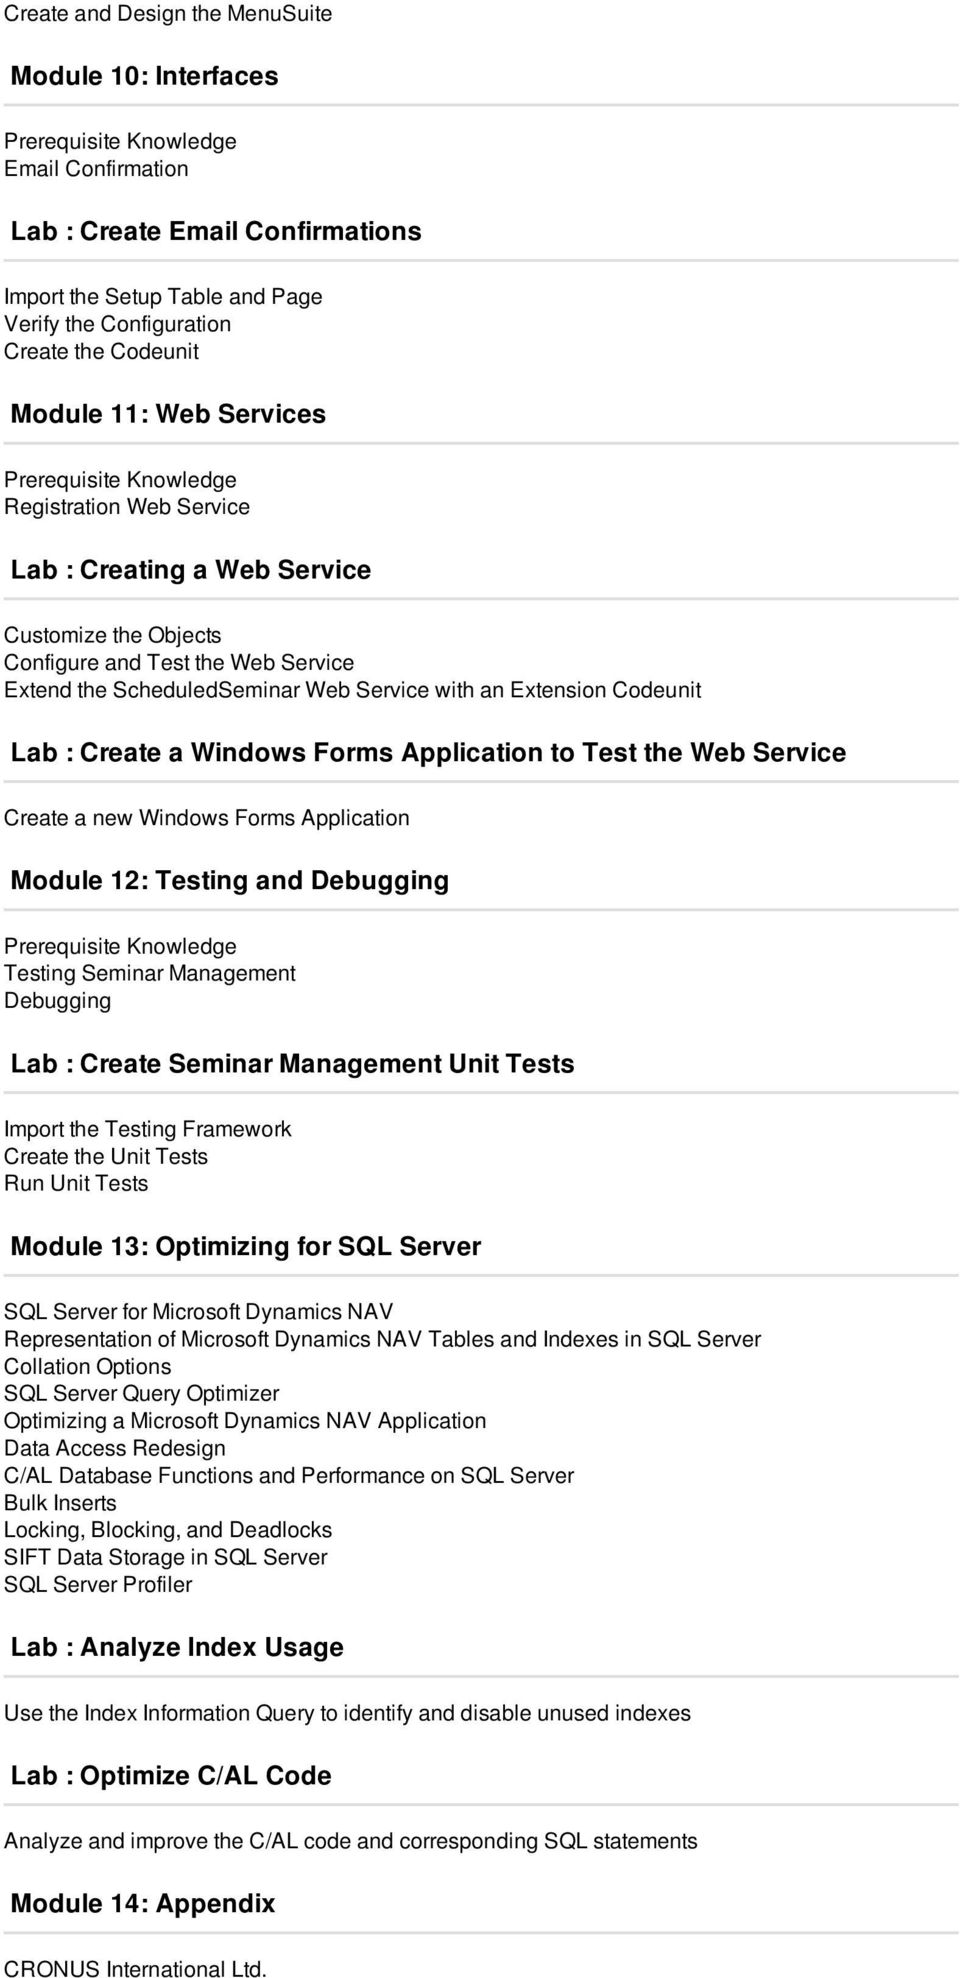 a Windows Forms Application to Test the Web Service Create a new Windows Forms Application Module 12: Testing and Debugging Testing Seminar Management Debugging Lab : Create Seminar Management Unit